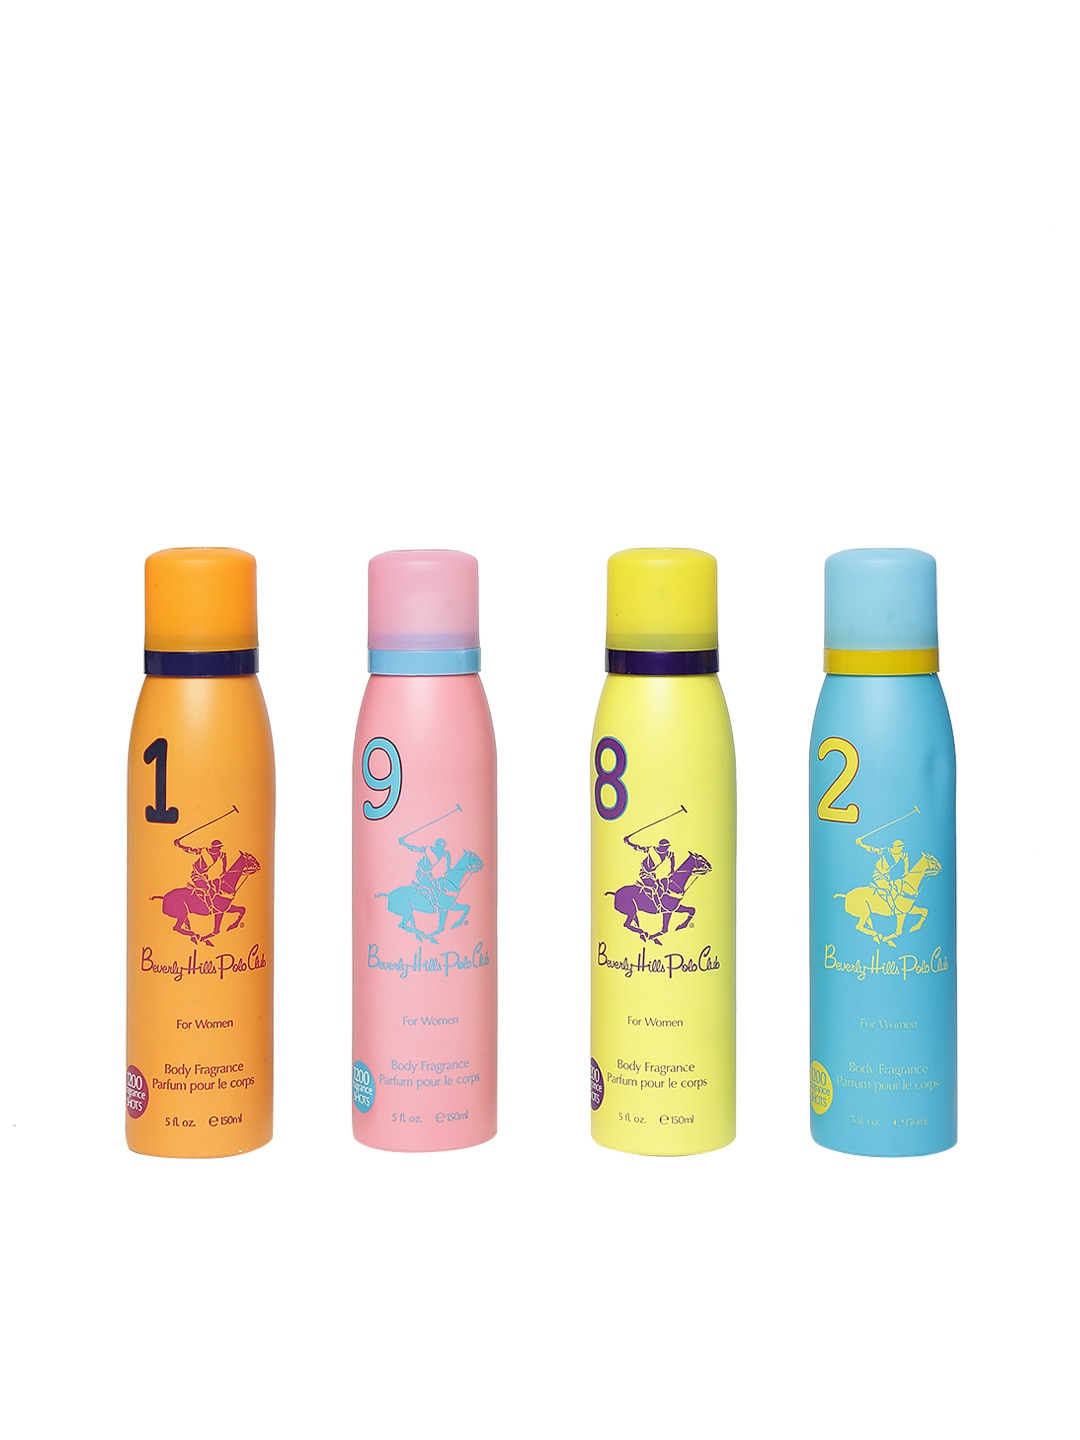 Beverly Hills Polo Club Set of 4 Deodorant Body Sprays image